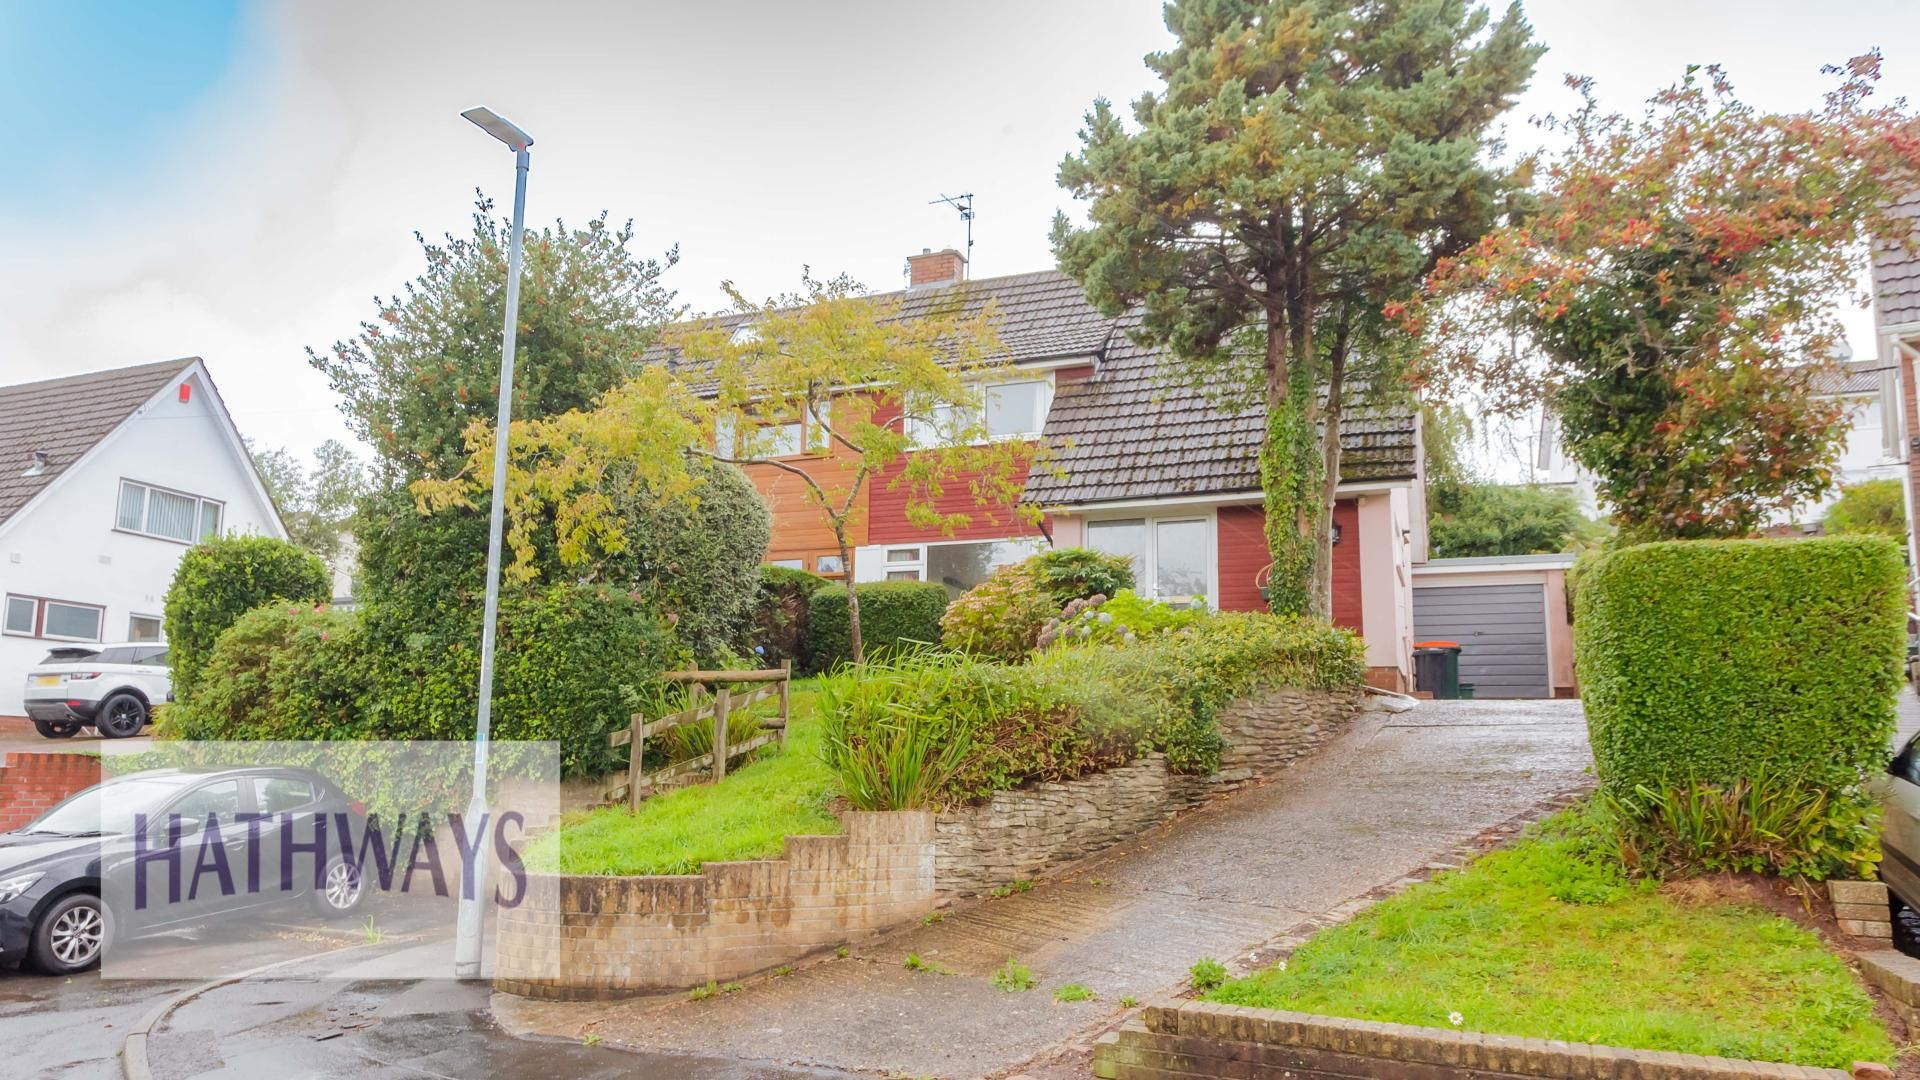 3 bed house for sale in Fairfield Road, NP18